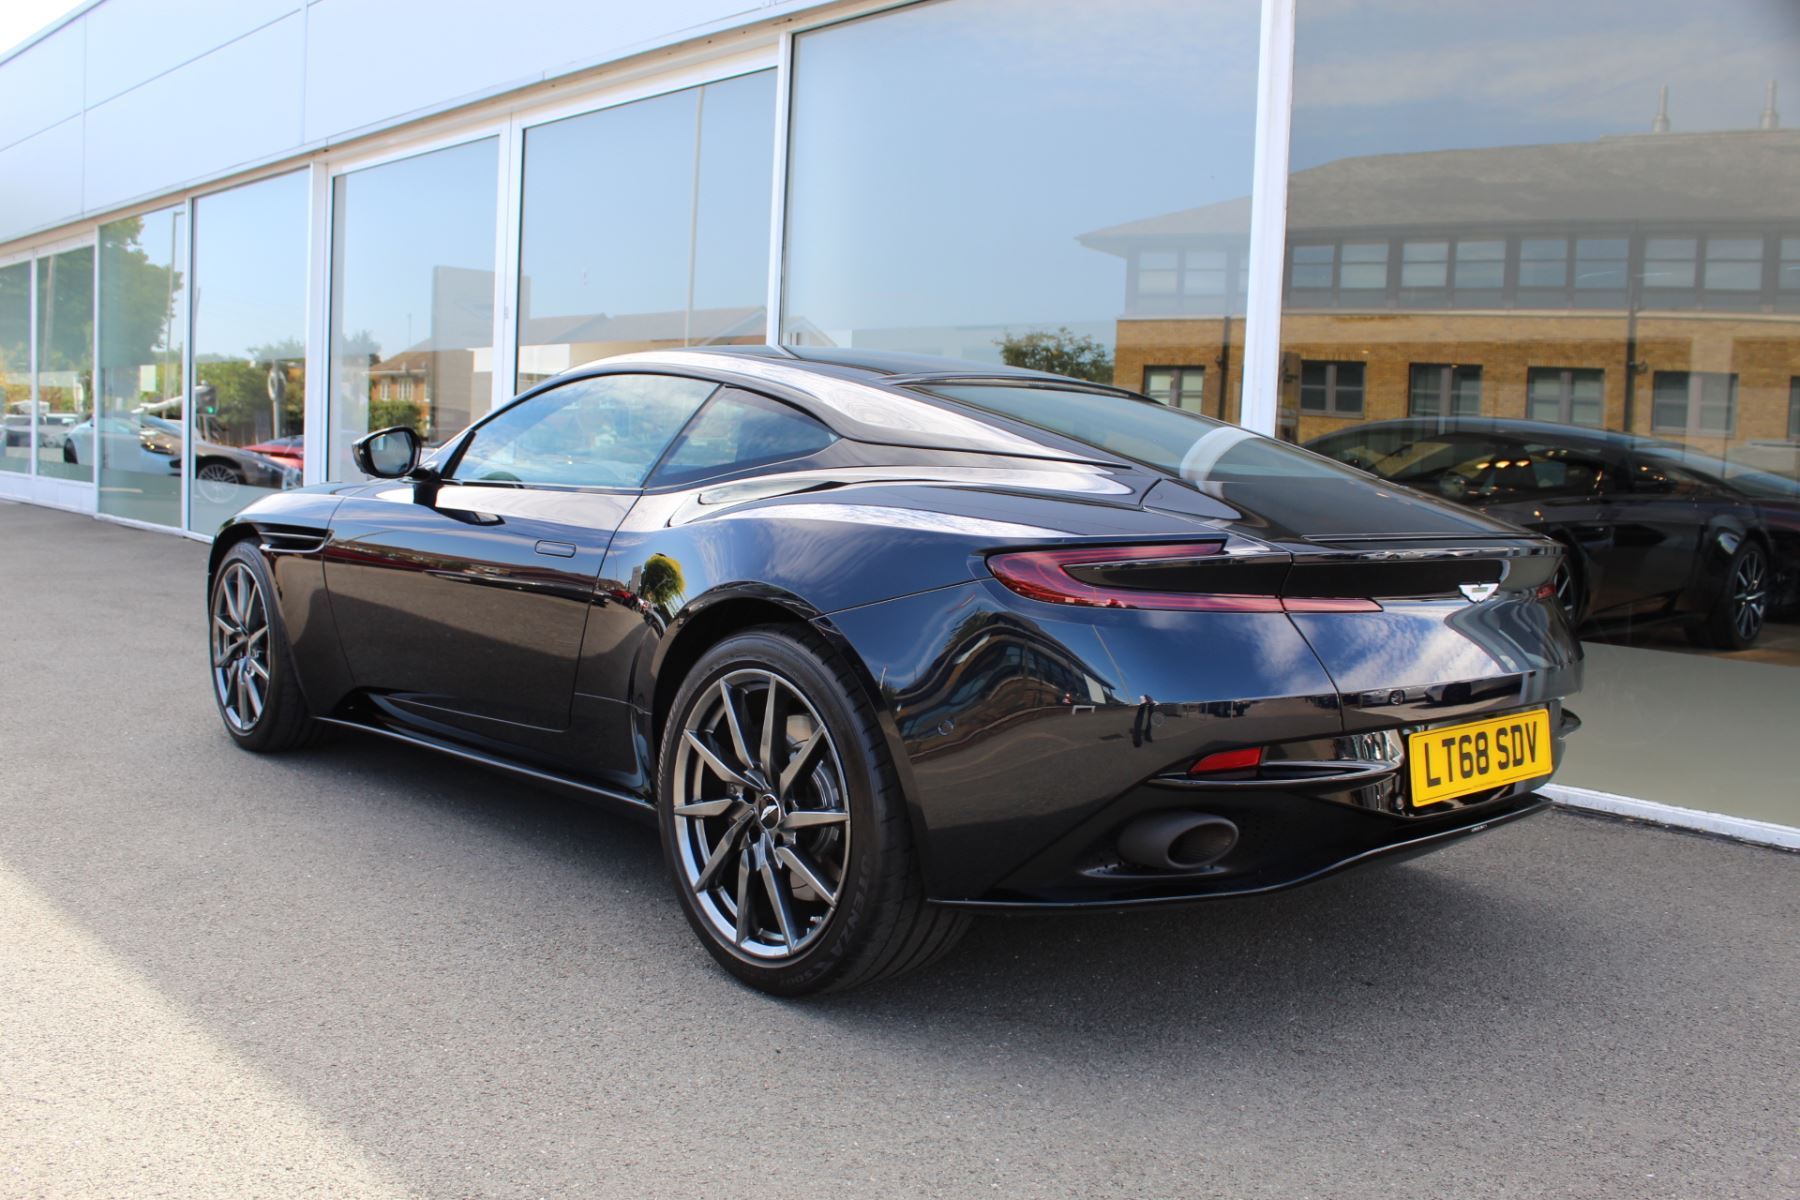 Aston Martin DB11 V12 2dr Touchtronic image 24